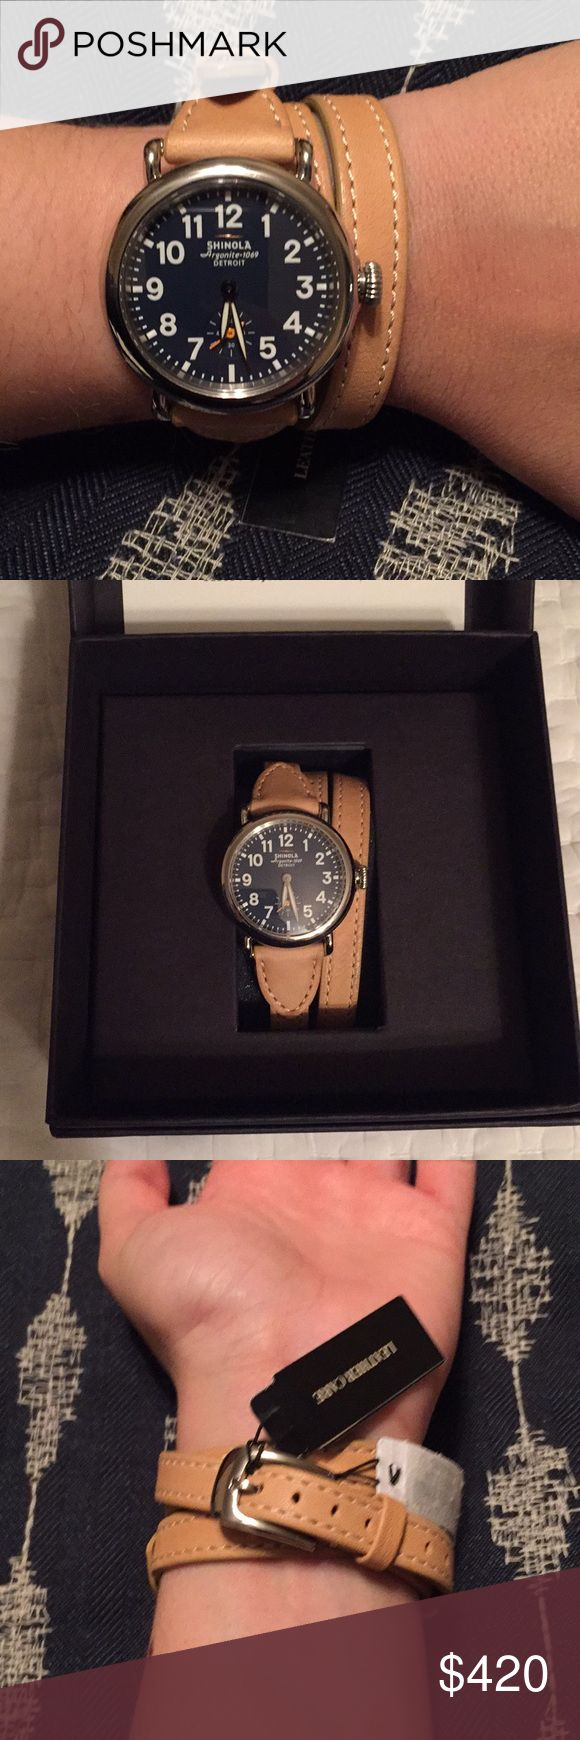 NWT Shinola Runwell 36M Triple Strap Watch ⌚️ NWT Shinola Runwell model triple strand band watch. Face is all stainless steel, Water resistant 5 ATM, sapphire crystal. Strap is made of natural handcrafted leather. USA movement from Swiss and imported parts. Original price was $575. This is new and still has the tags on, box, and instruction manual. Priced to accommodate new battery that is needed. Shinola Accessories Watches